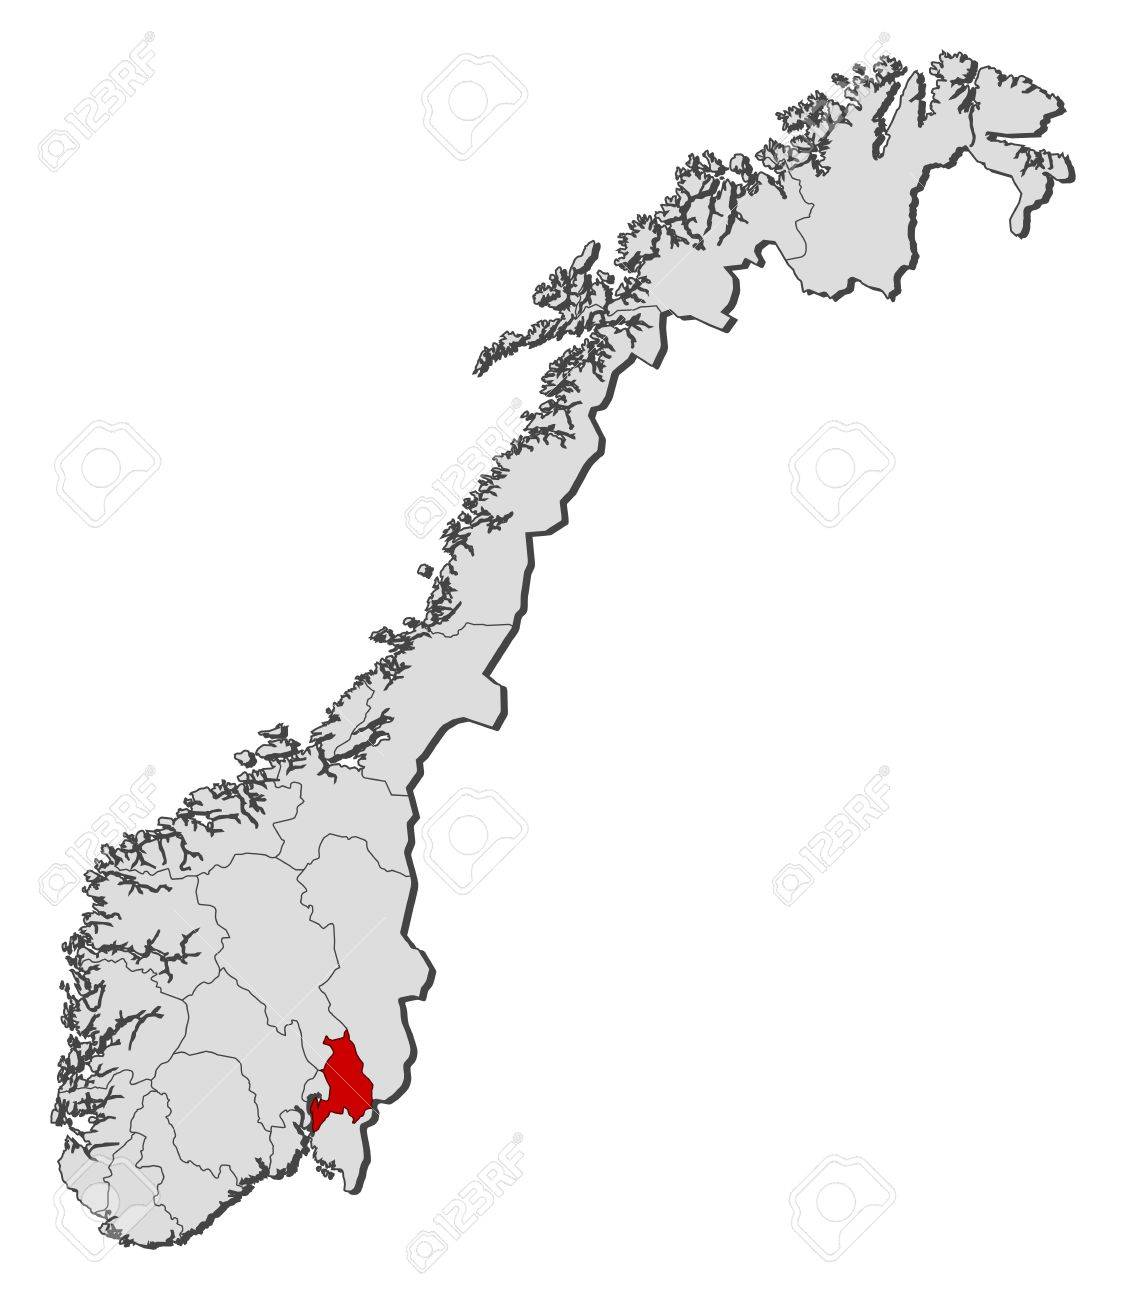 Political Map Of Norway With The Several Counties Where Akershus - Norway on us map